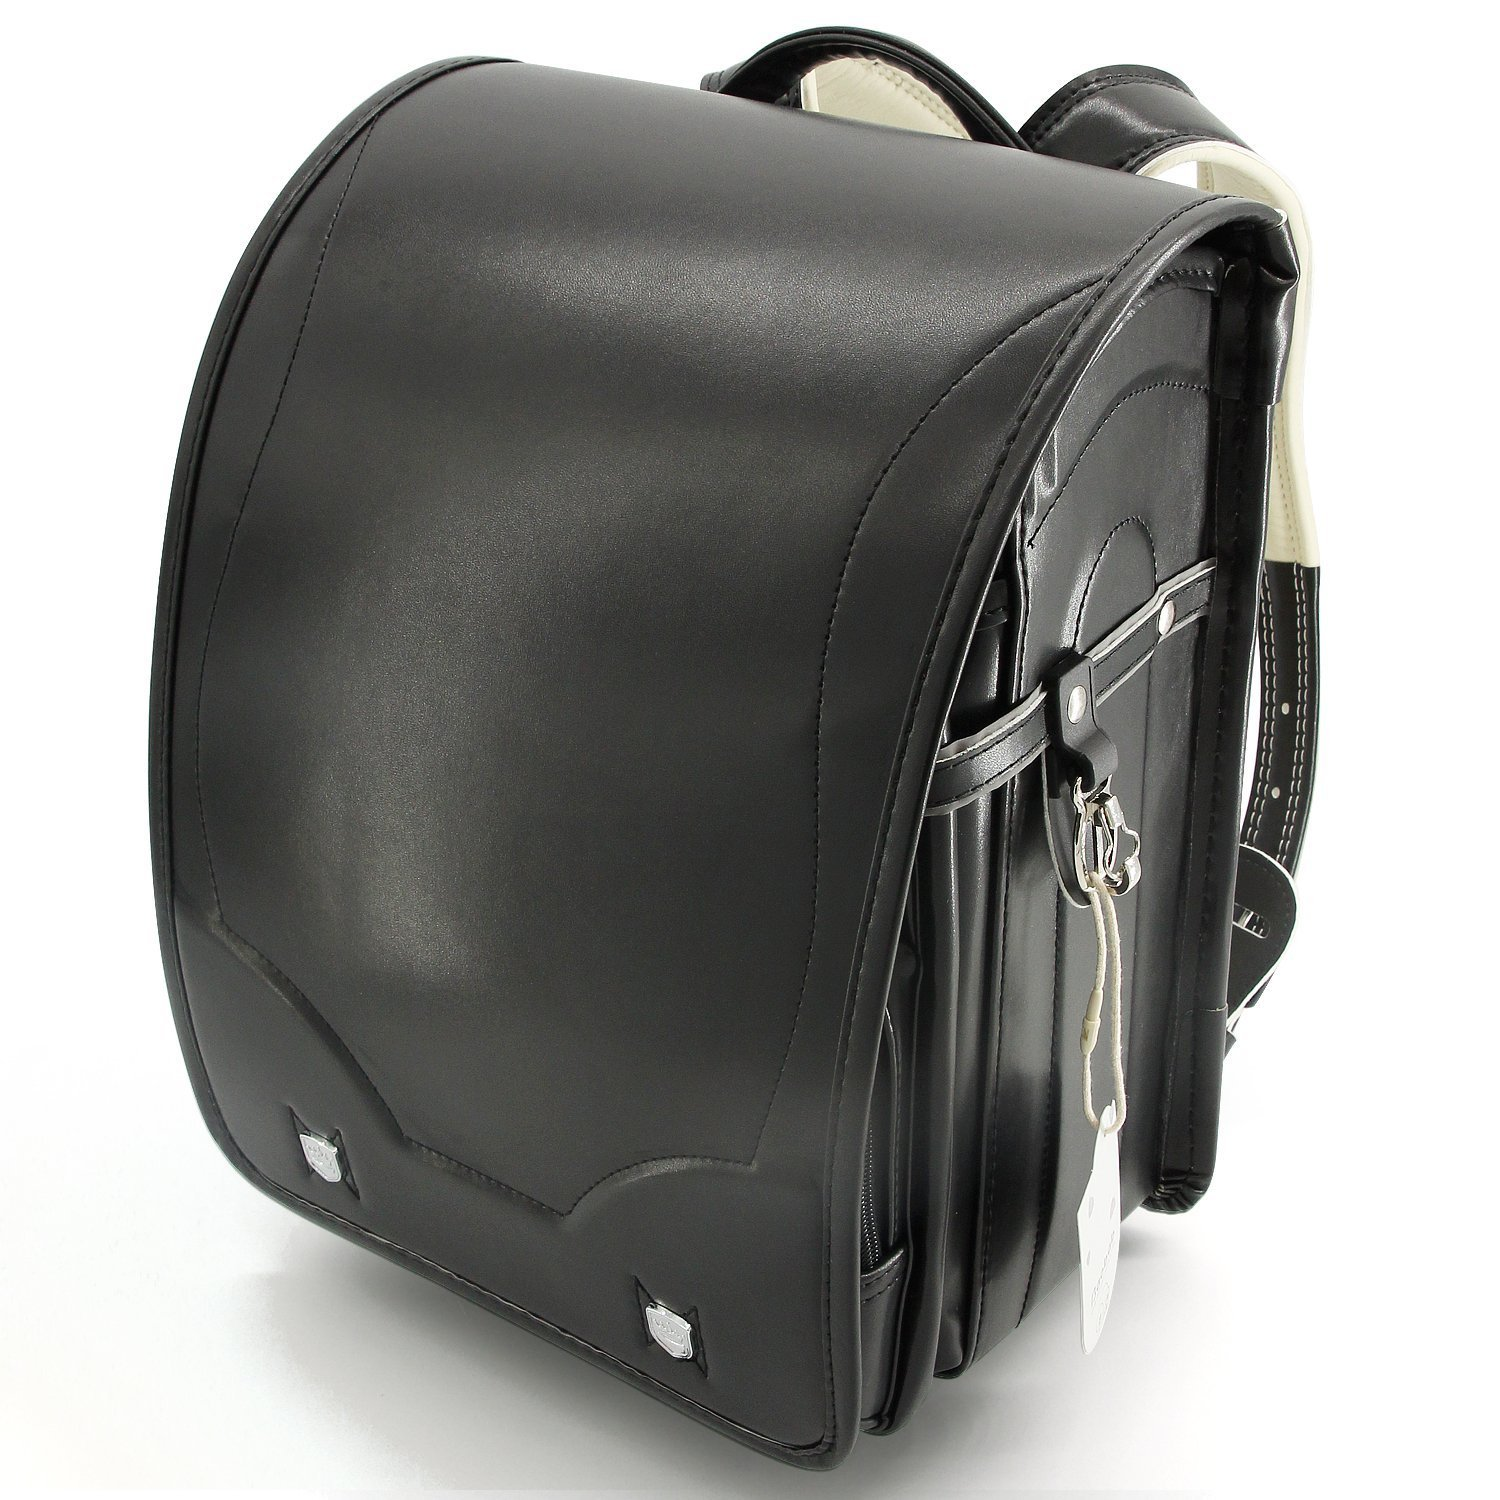 Ransel Randoseru upscale full-automatic Japanese schoolbags for girls and boys Black by Baobab's Wish